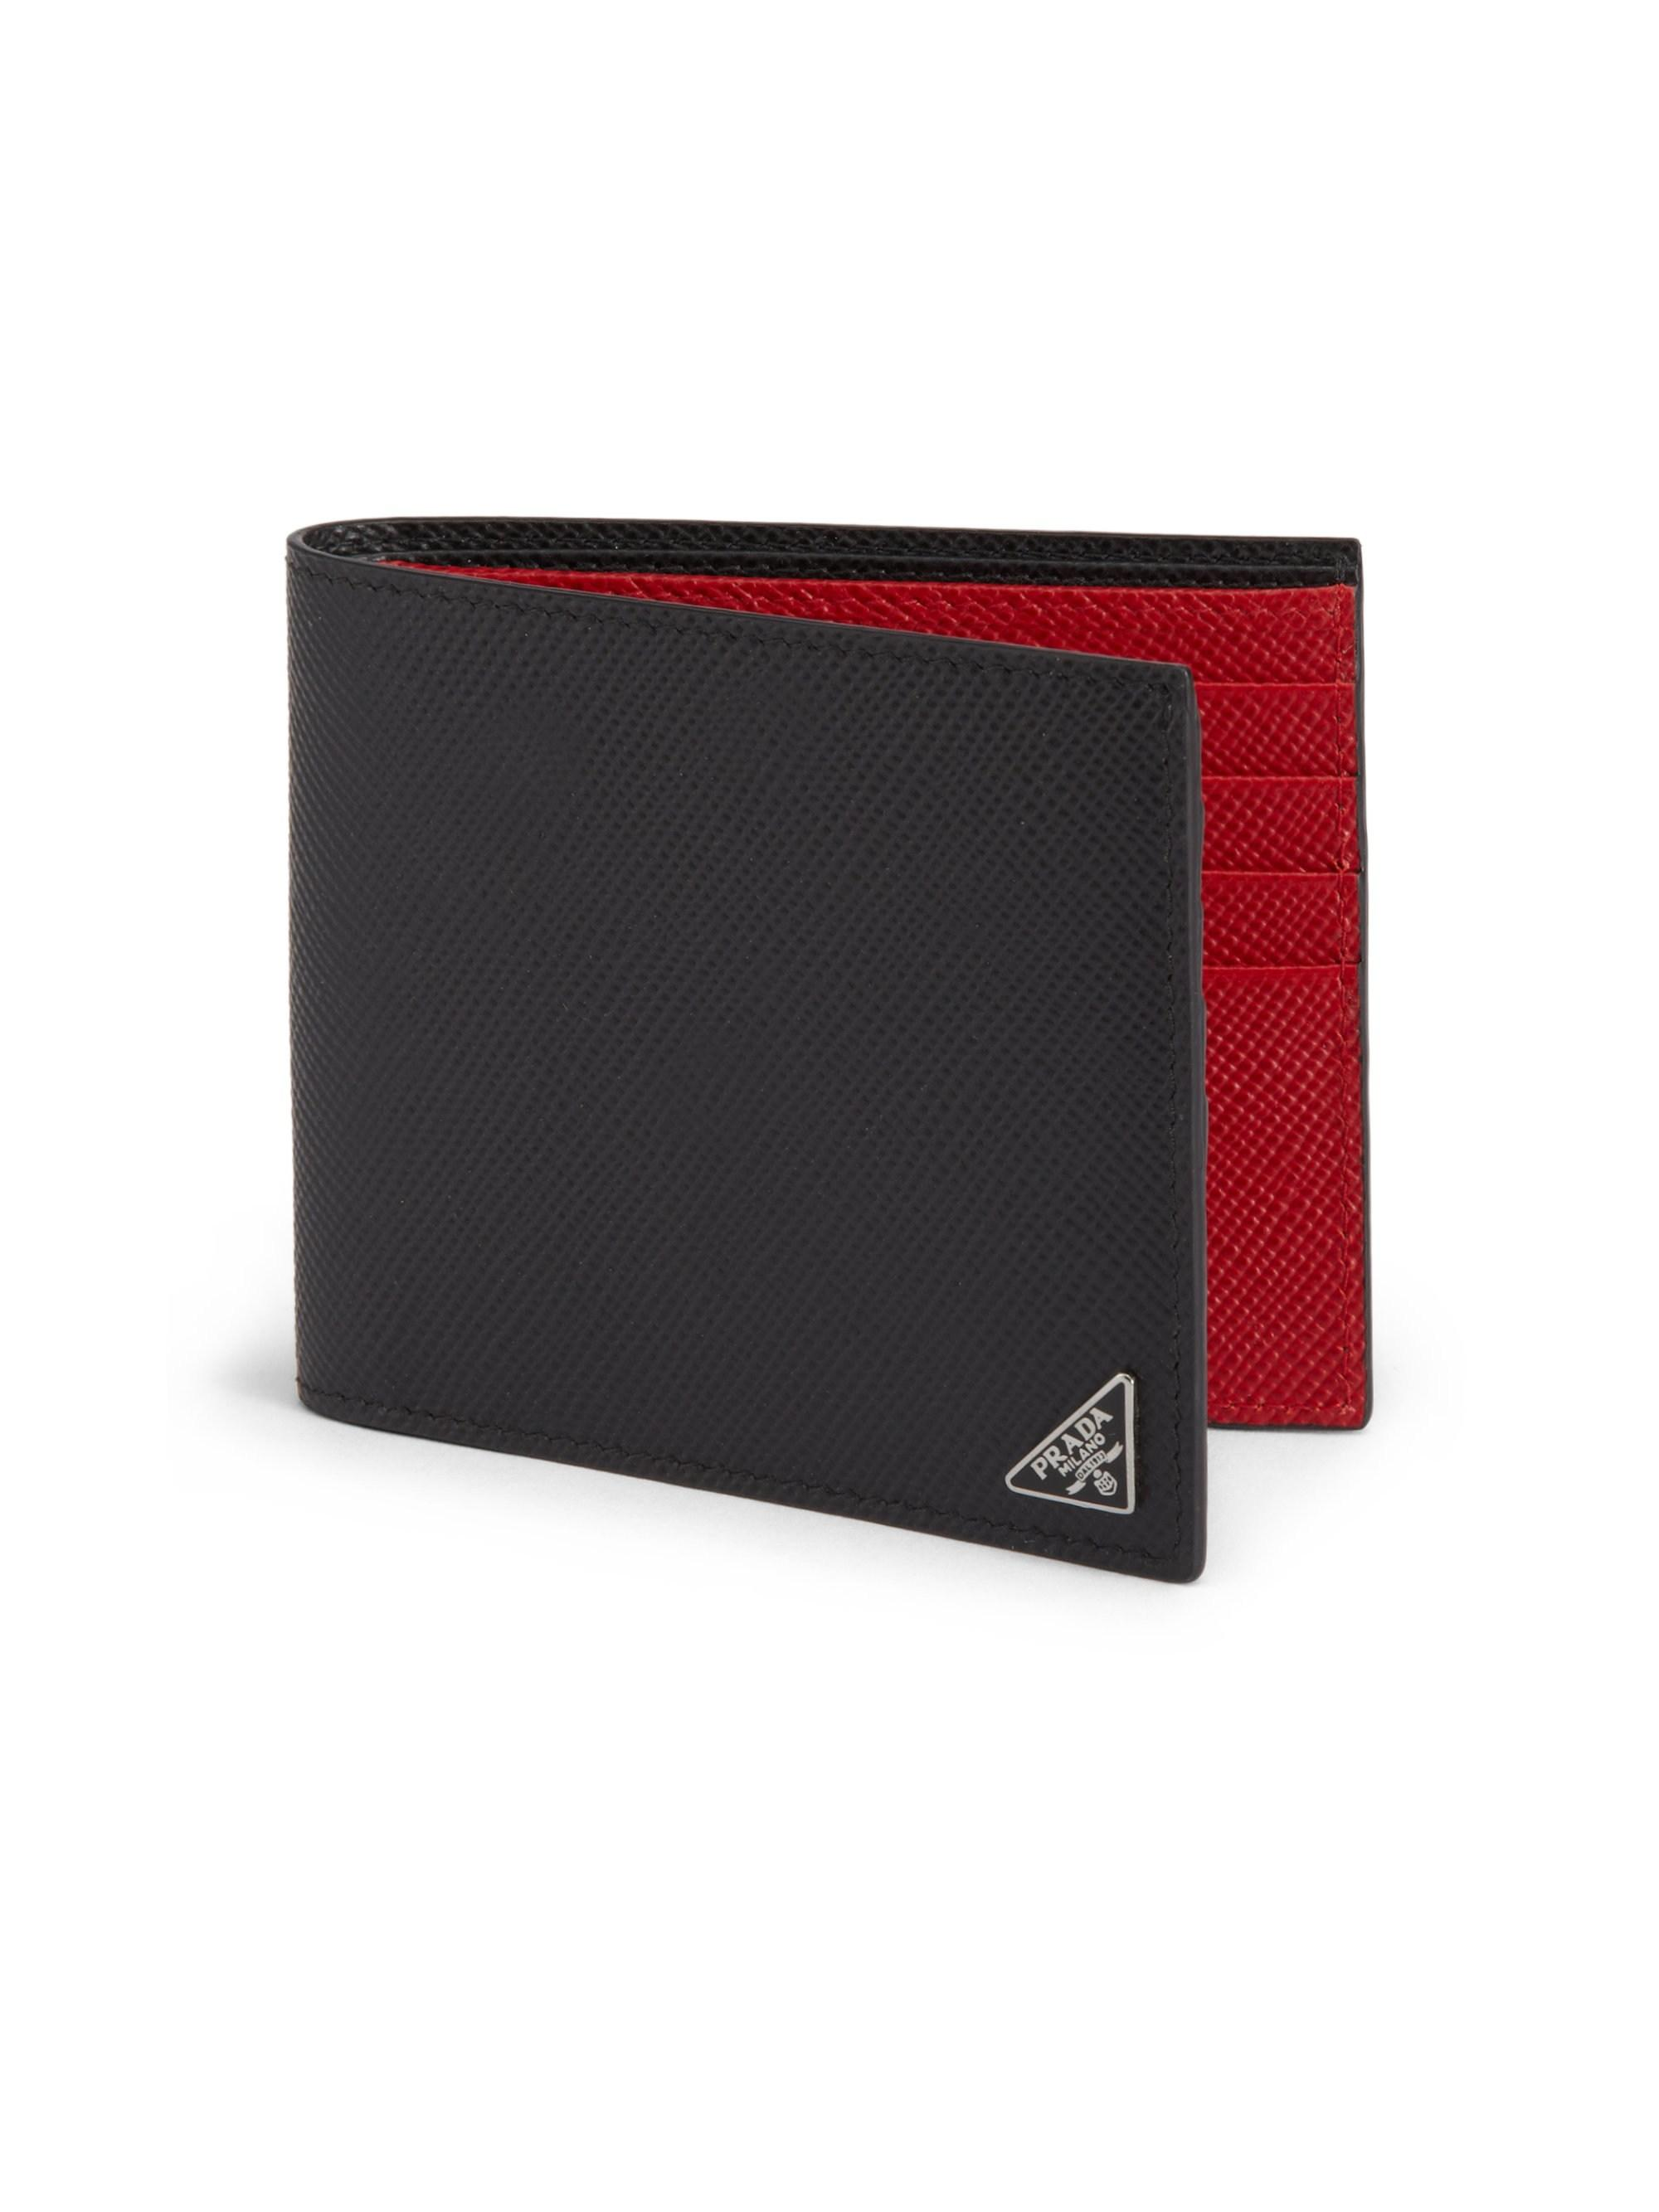 aea023270c66 Prada Men's Saffiano Cuir Billfold Wallet - Black/red in Black for ...